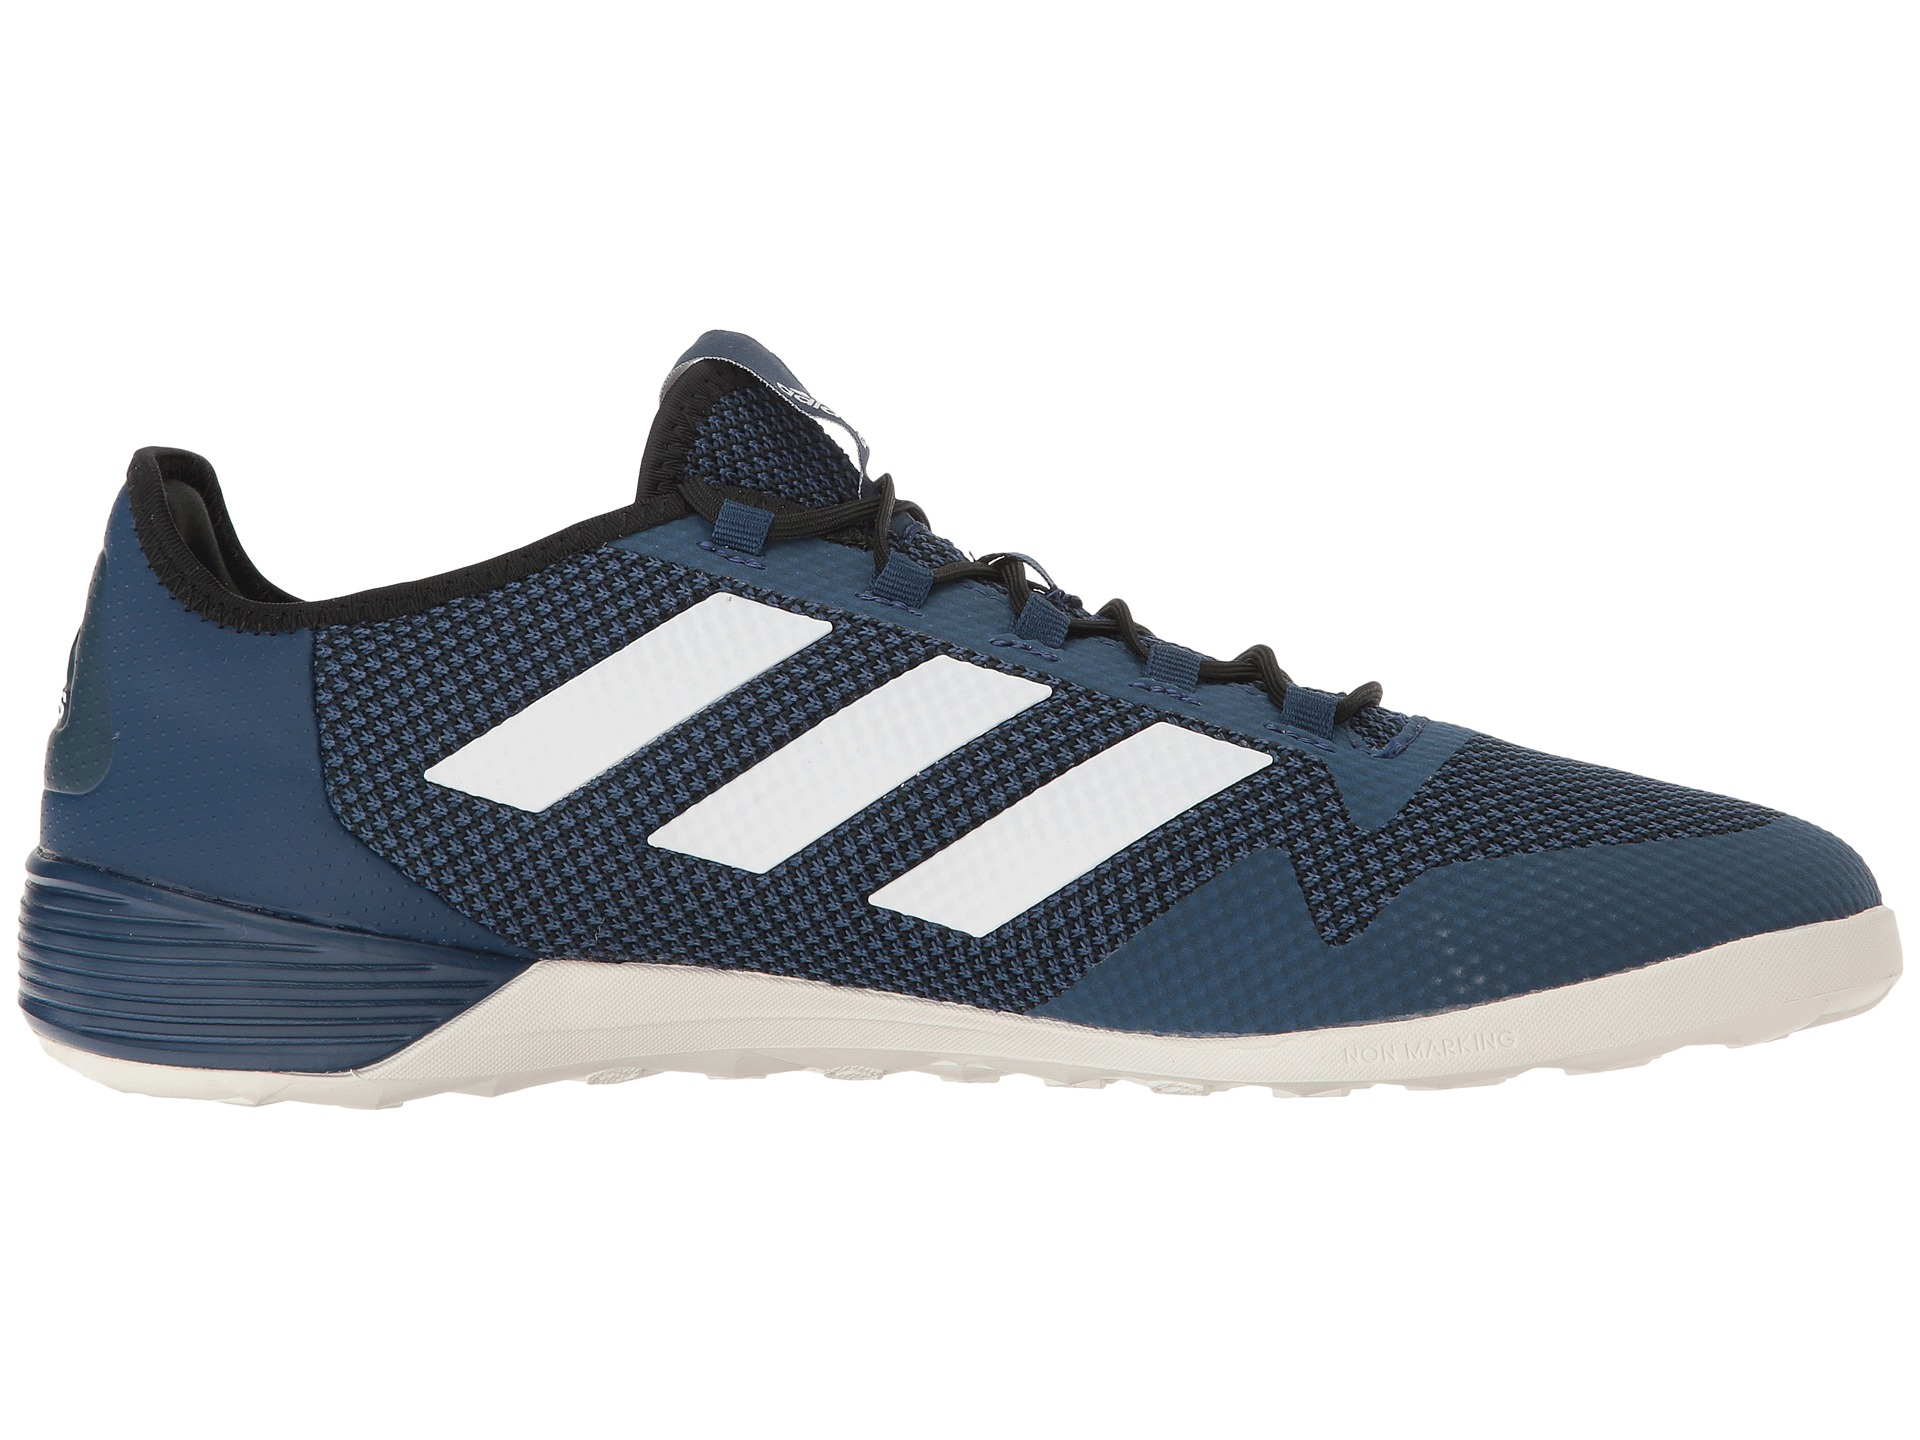 adidas Ace Tango 17.2 IN at 6pm.com